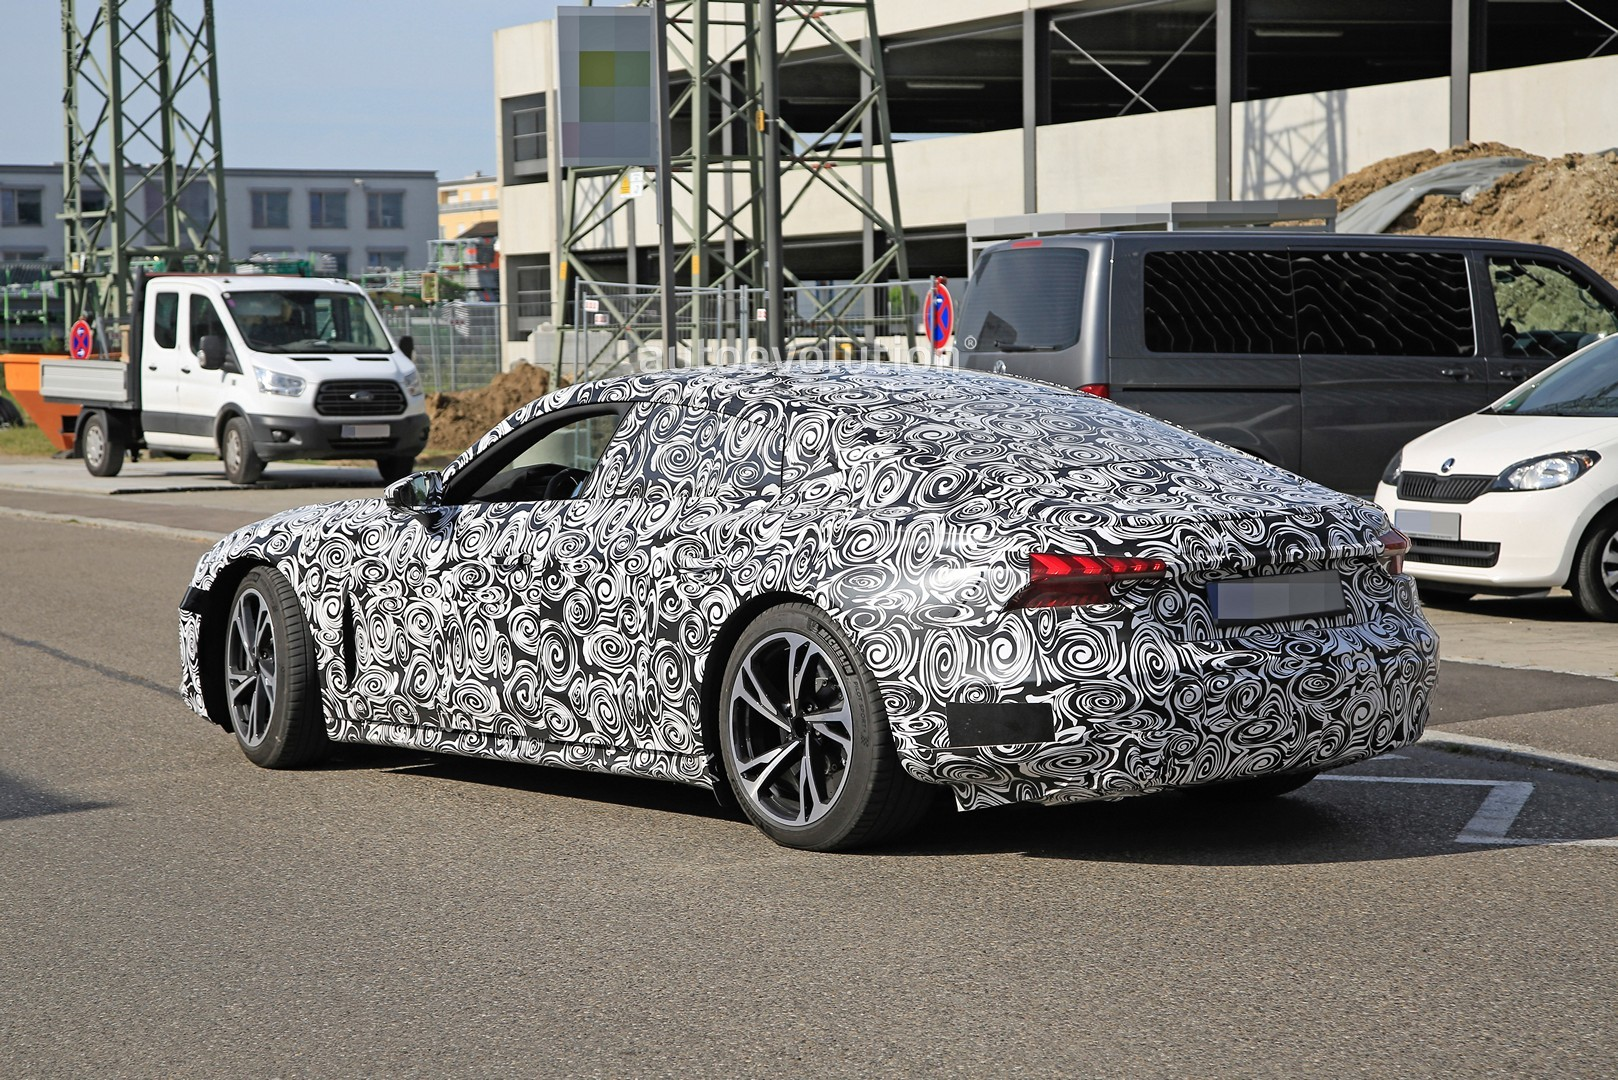 2021-audi-​e-tron-gt-​spotted-10​0000-ev-ge​tting-read​y-for-prod​uction_8